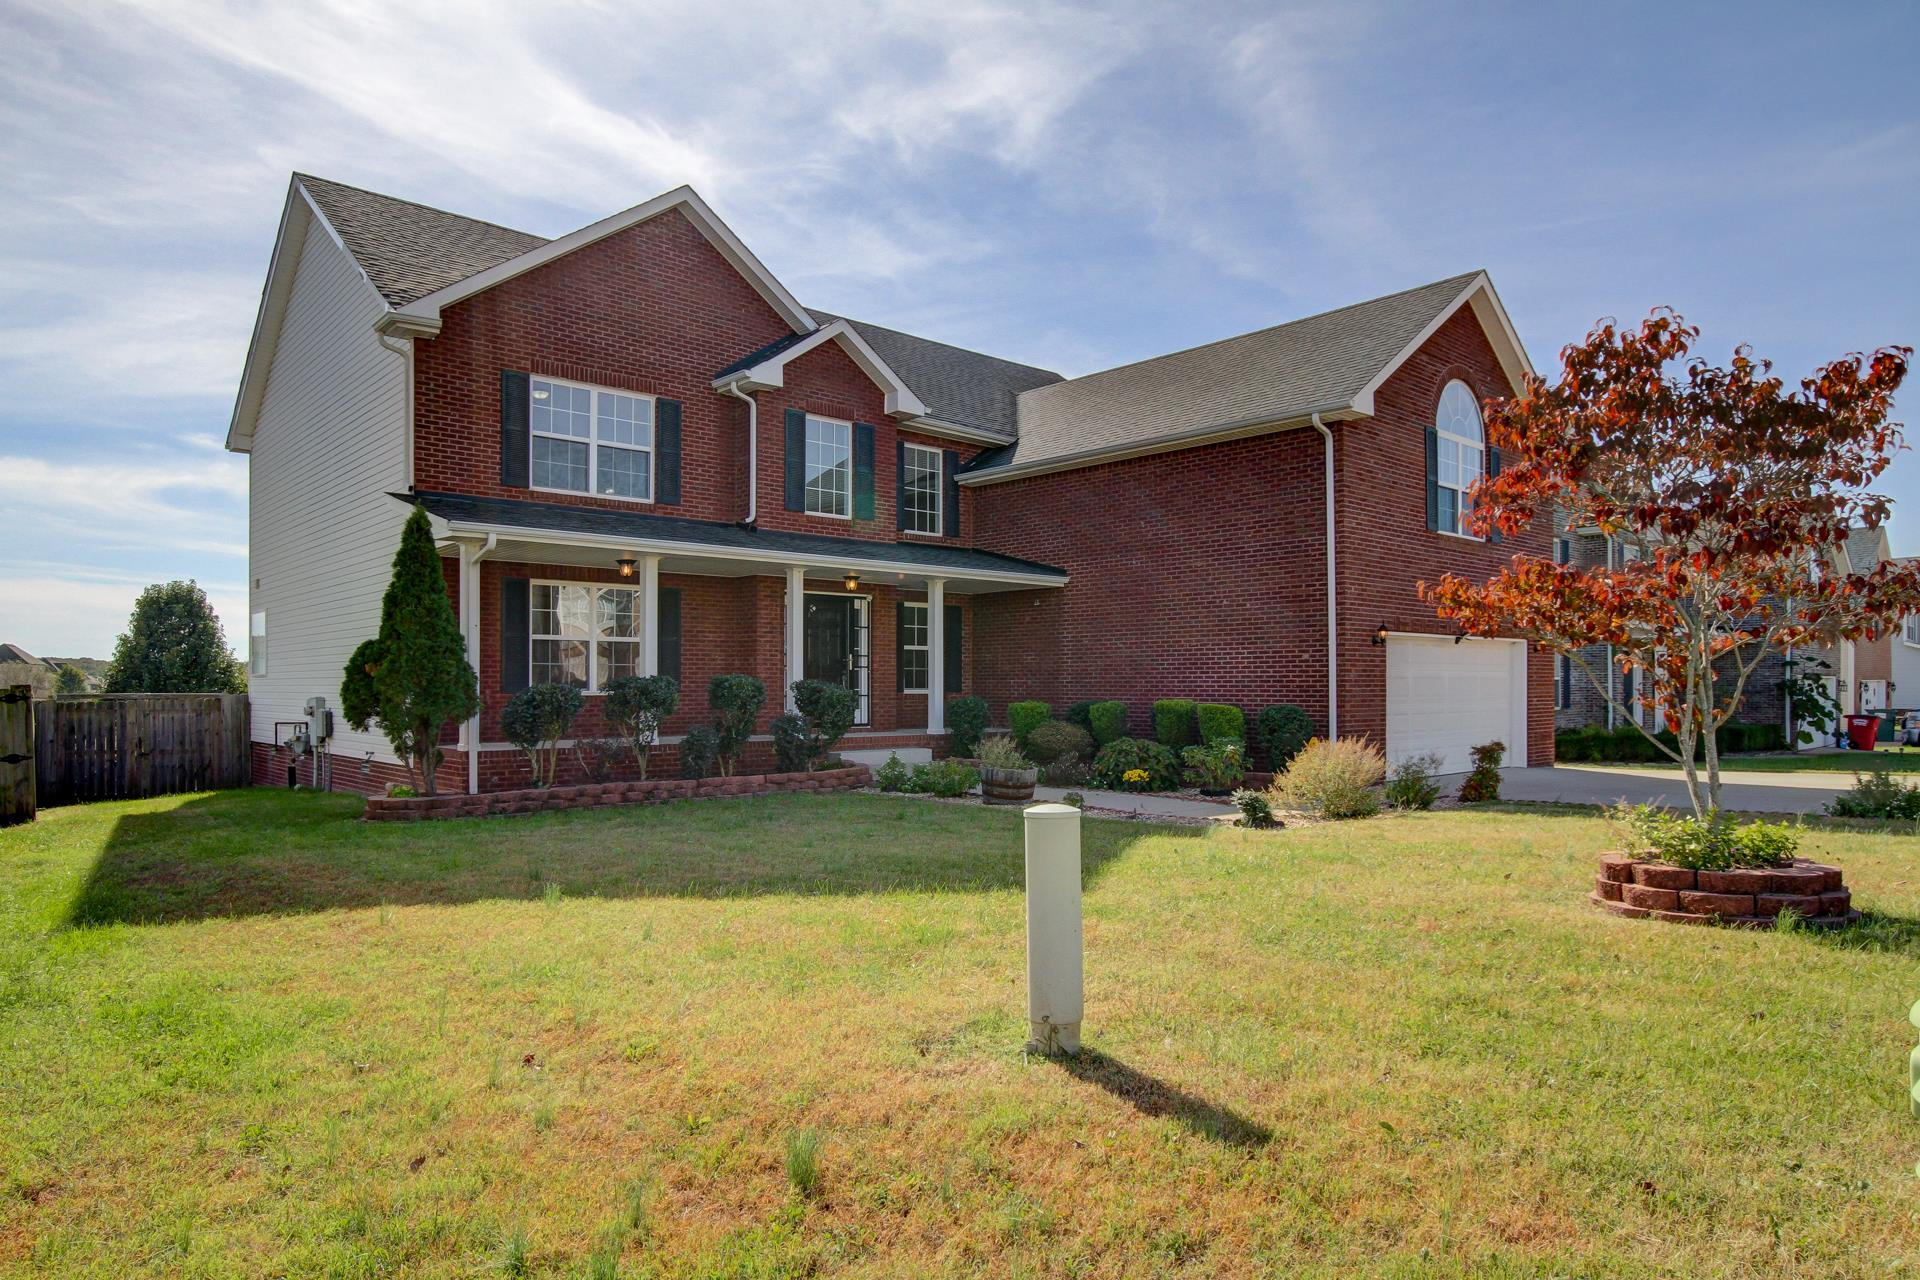 1188 Stillwood Dr, Fort Campbell, Tennessee